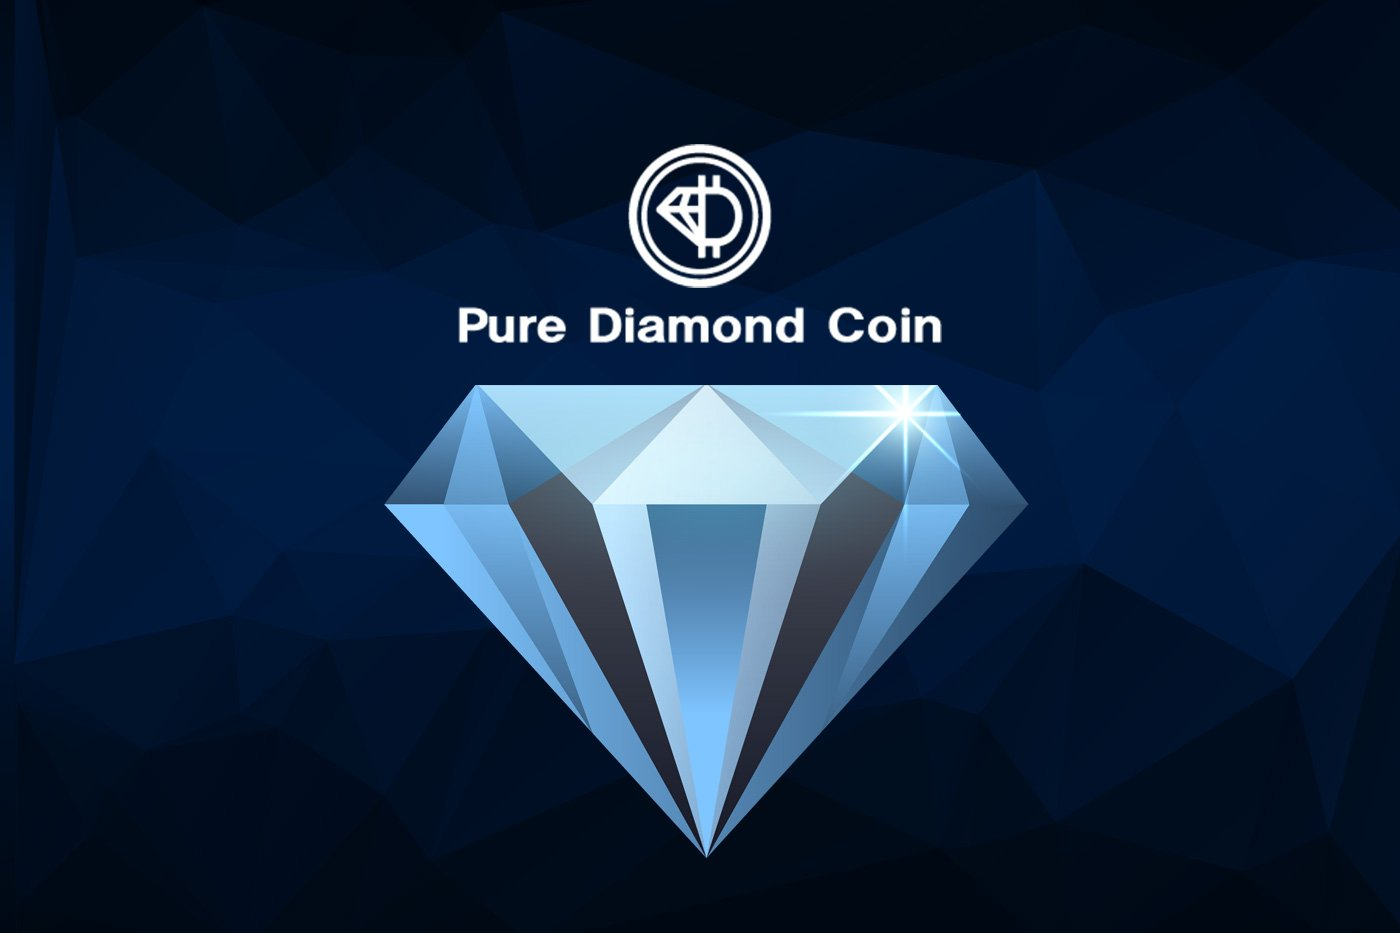 Pure Diamond Coin